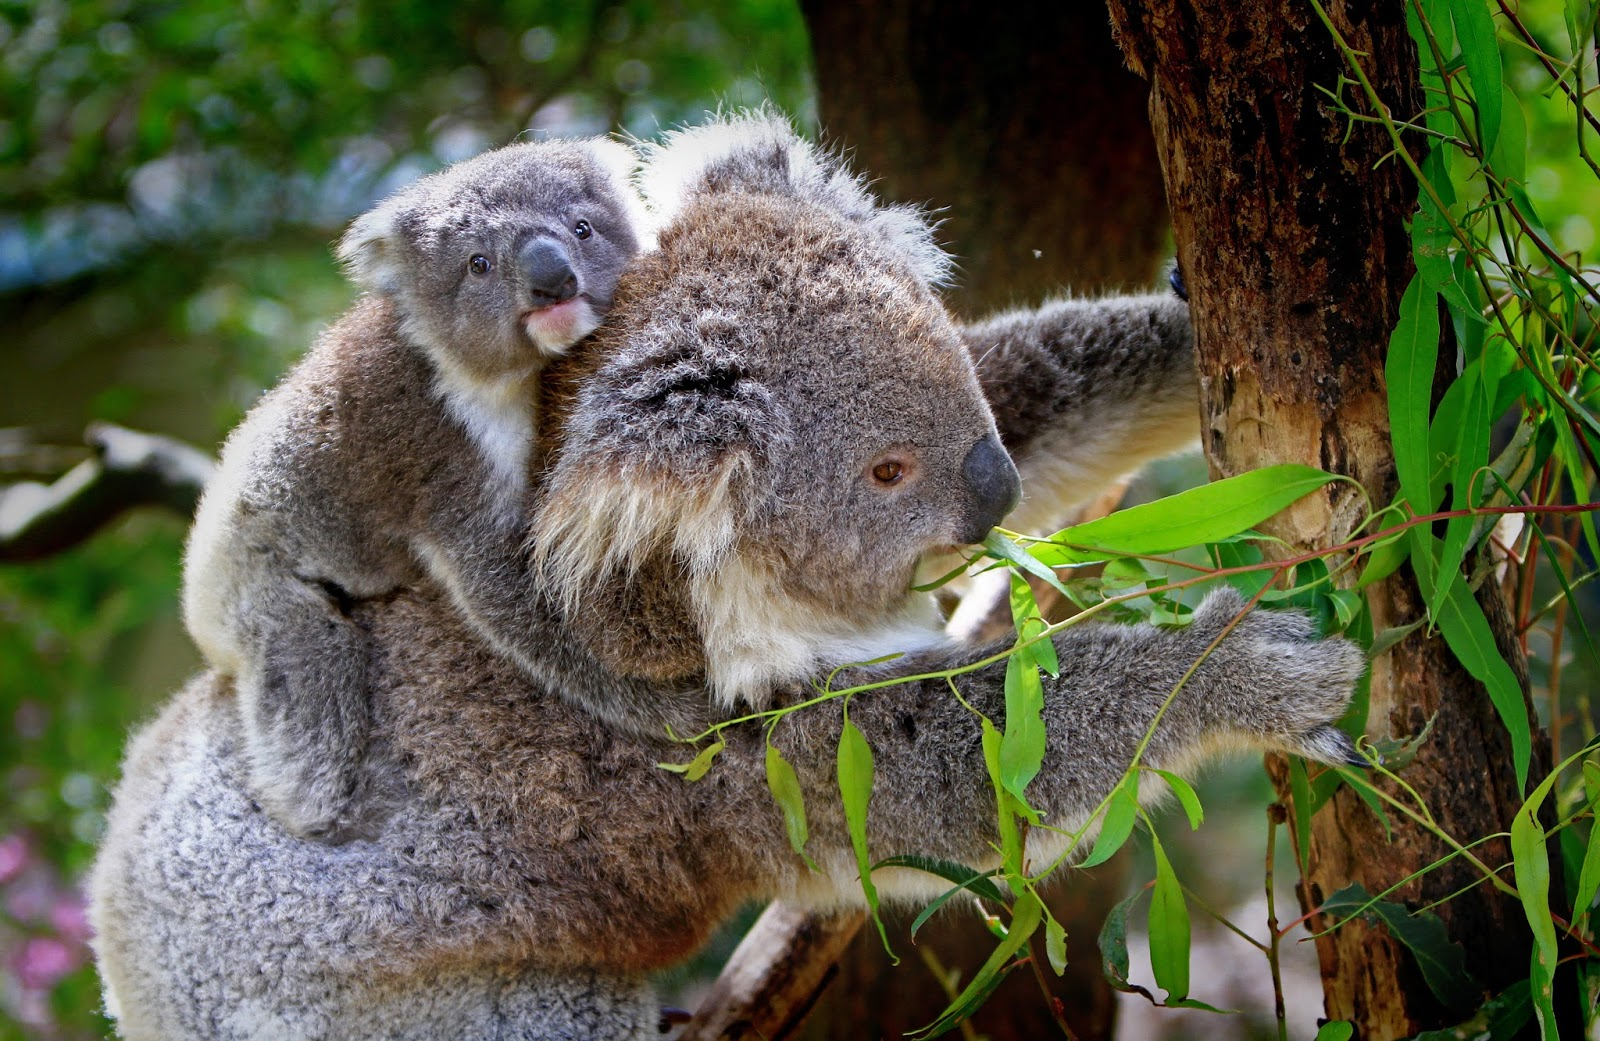 Baby koala rides on his mother's back.